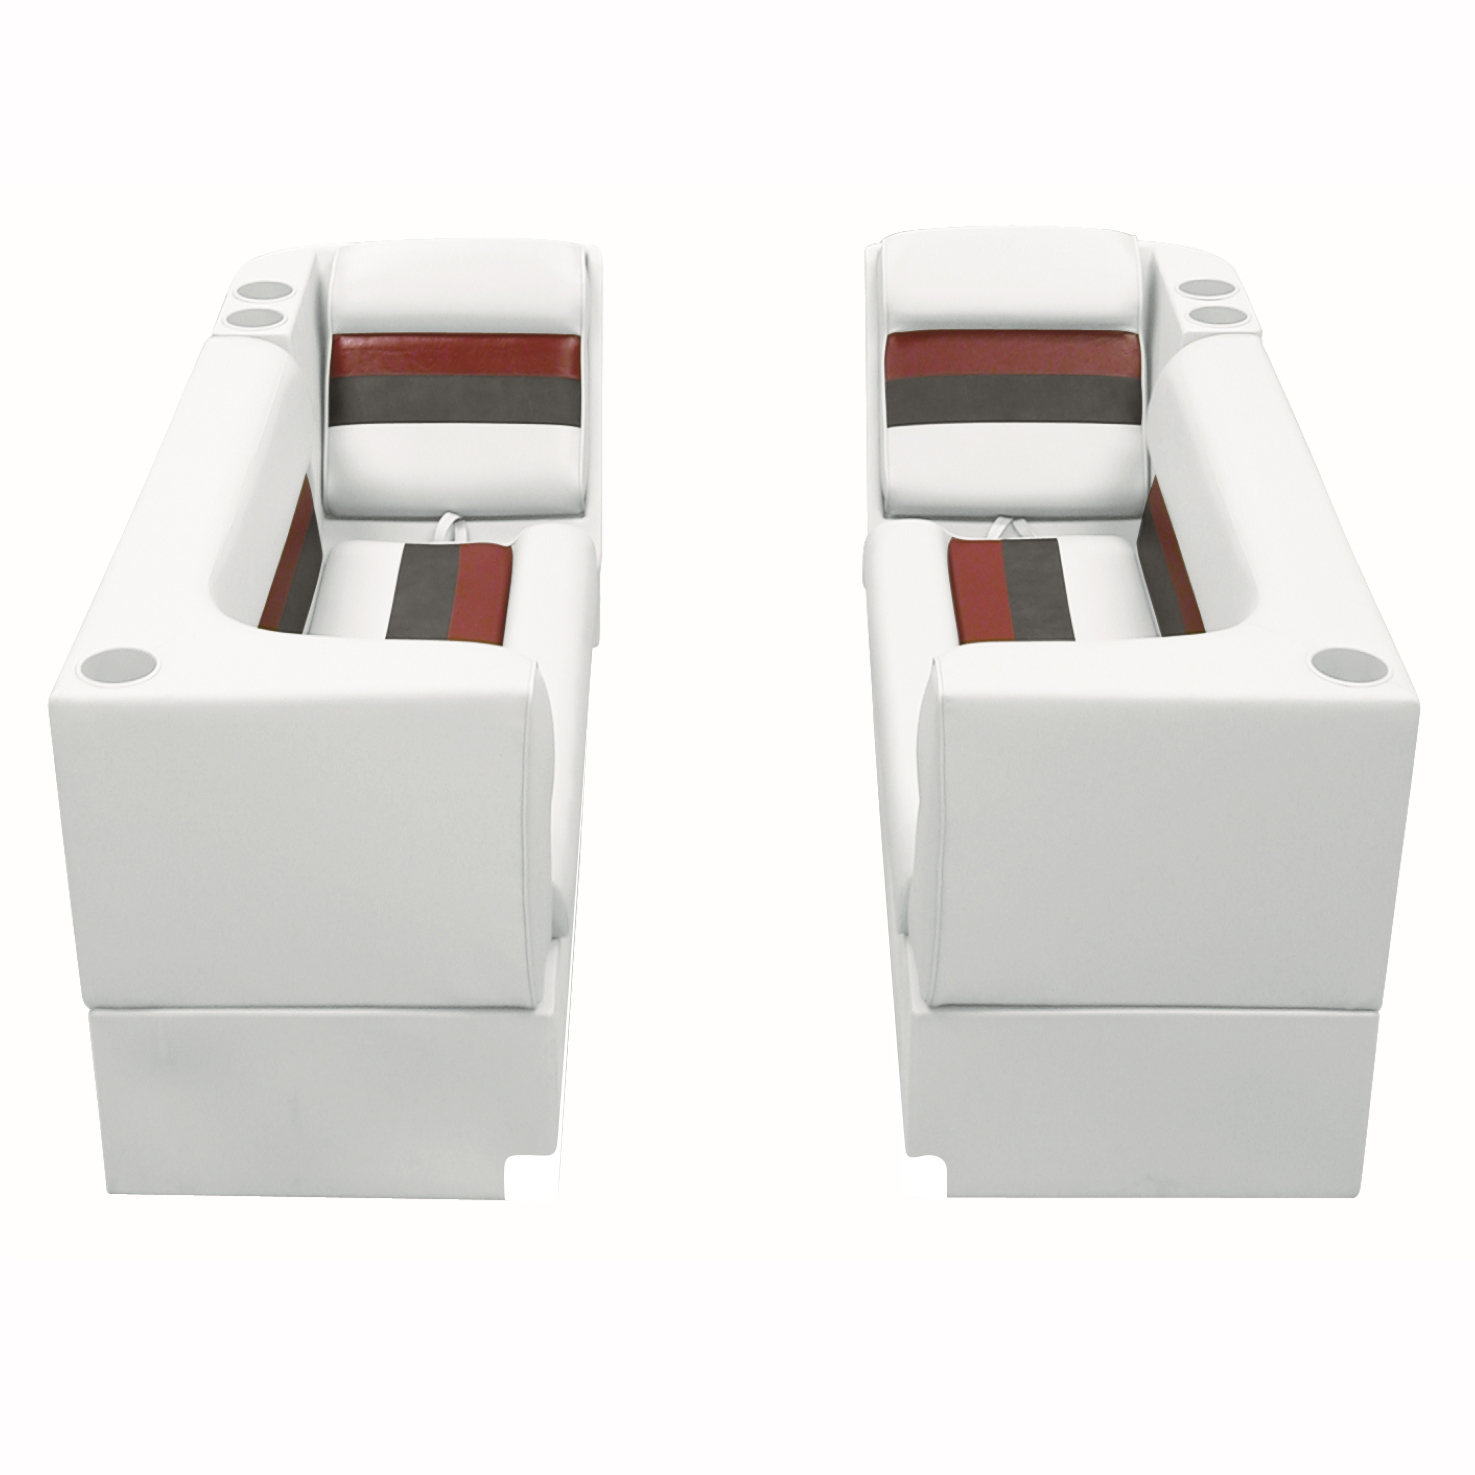 Deluxe Pontoon Furniture w/Toe Kick Base - Front Group Package B, White/Red/Char